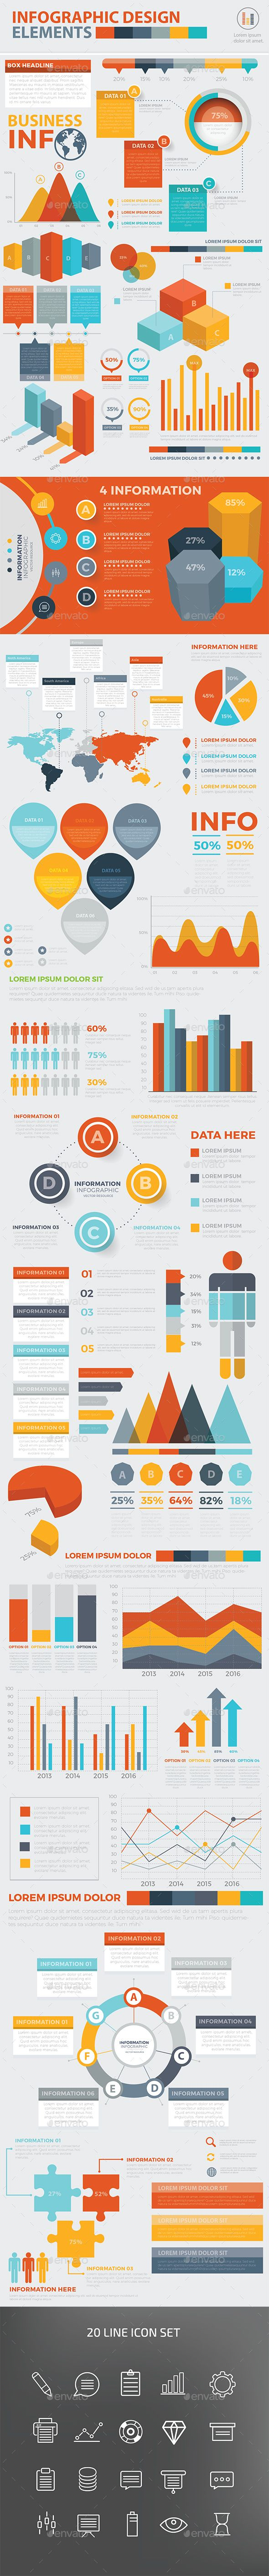 Modern Infographic Elements Design Template Vector EPS, AI Illustrator. Download here: http://graphicriver.net/item/modern-infographic-elements-design/16082166?ref=ksioks